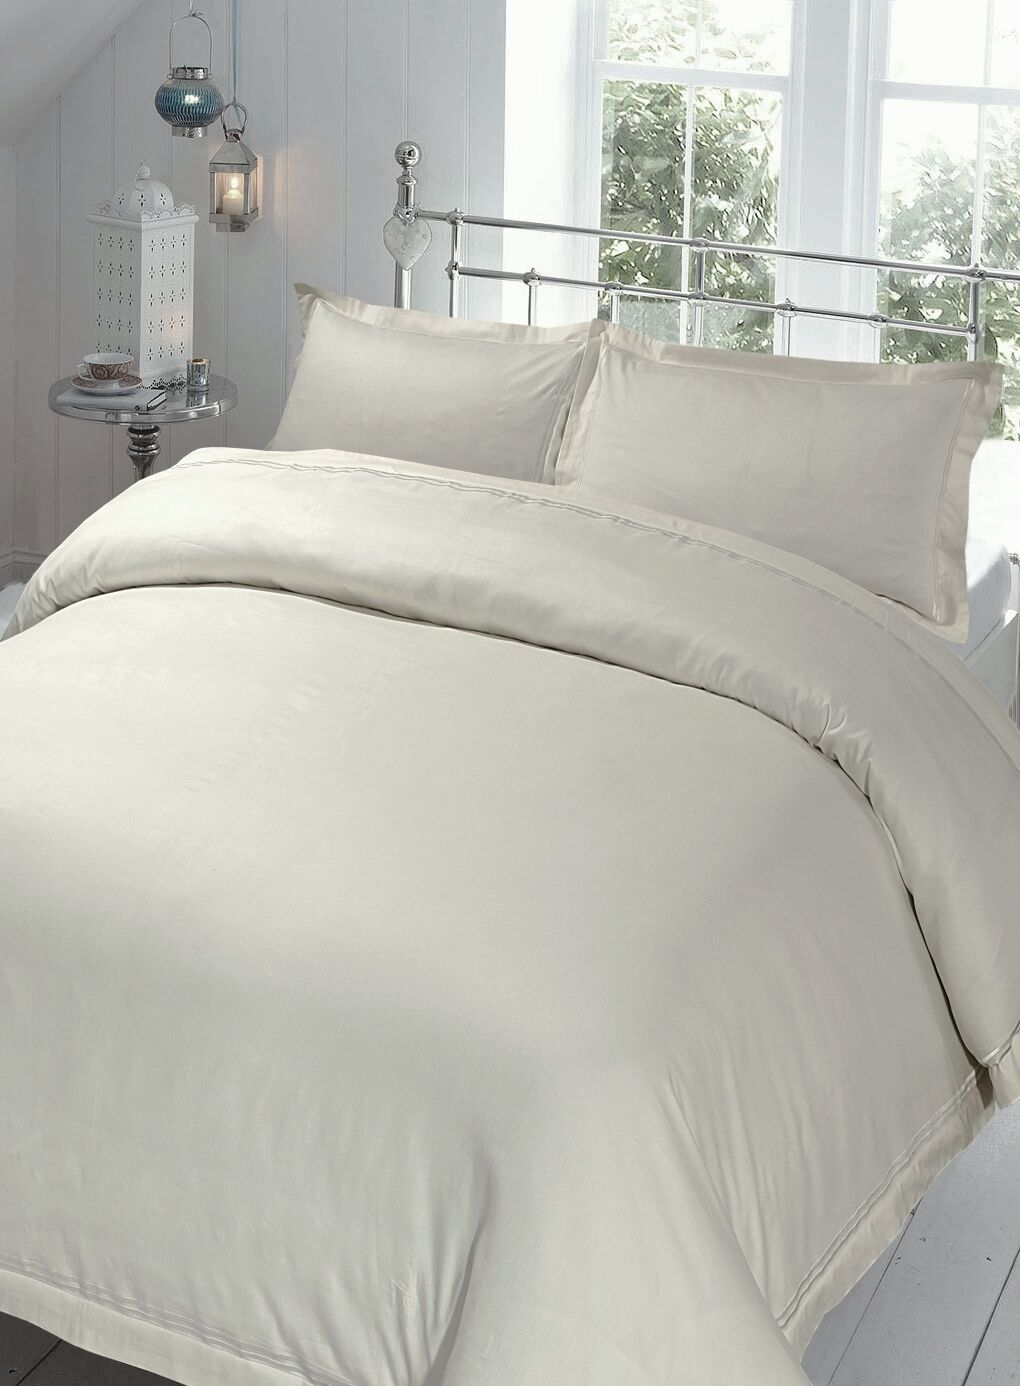 Oyster Grey Duvet Cover Set King Size 220Tc 100% Cotton with Oxford Pillowcases